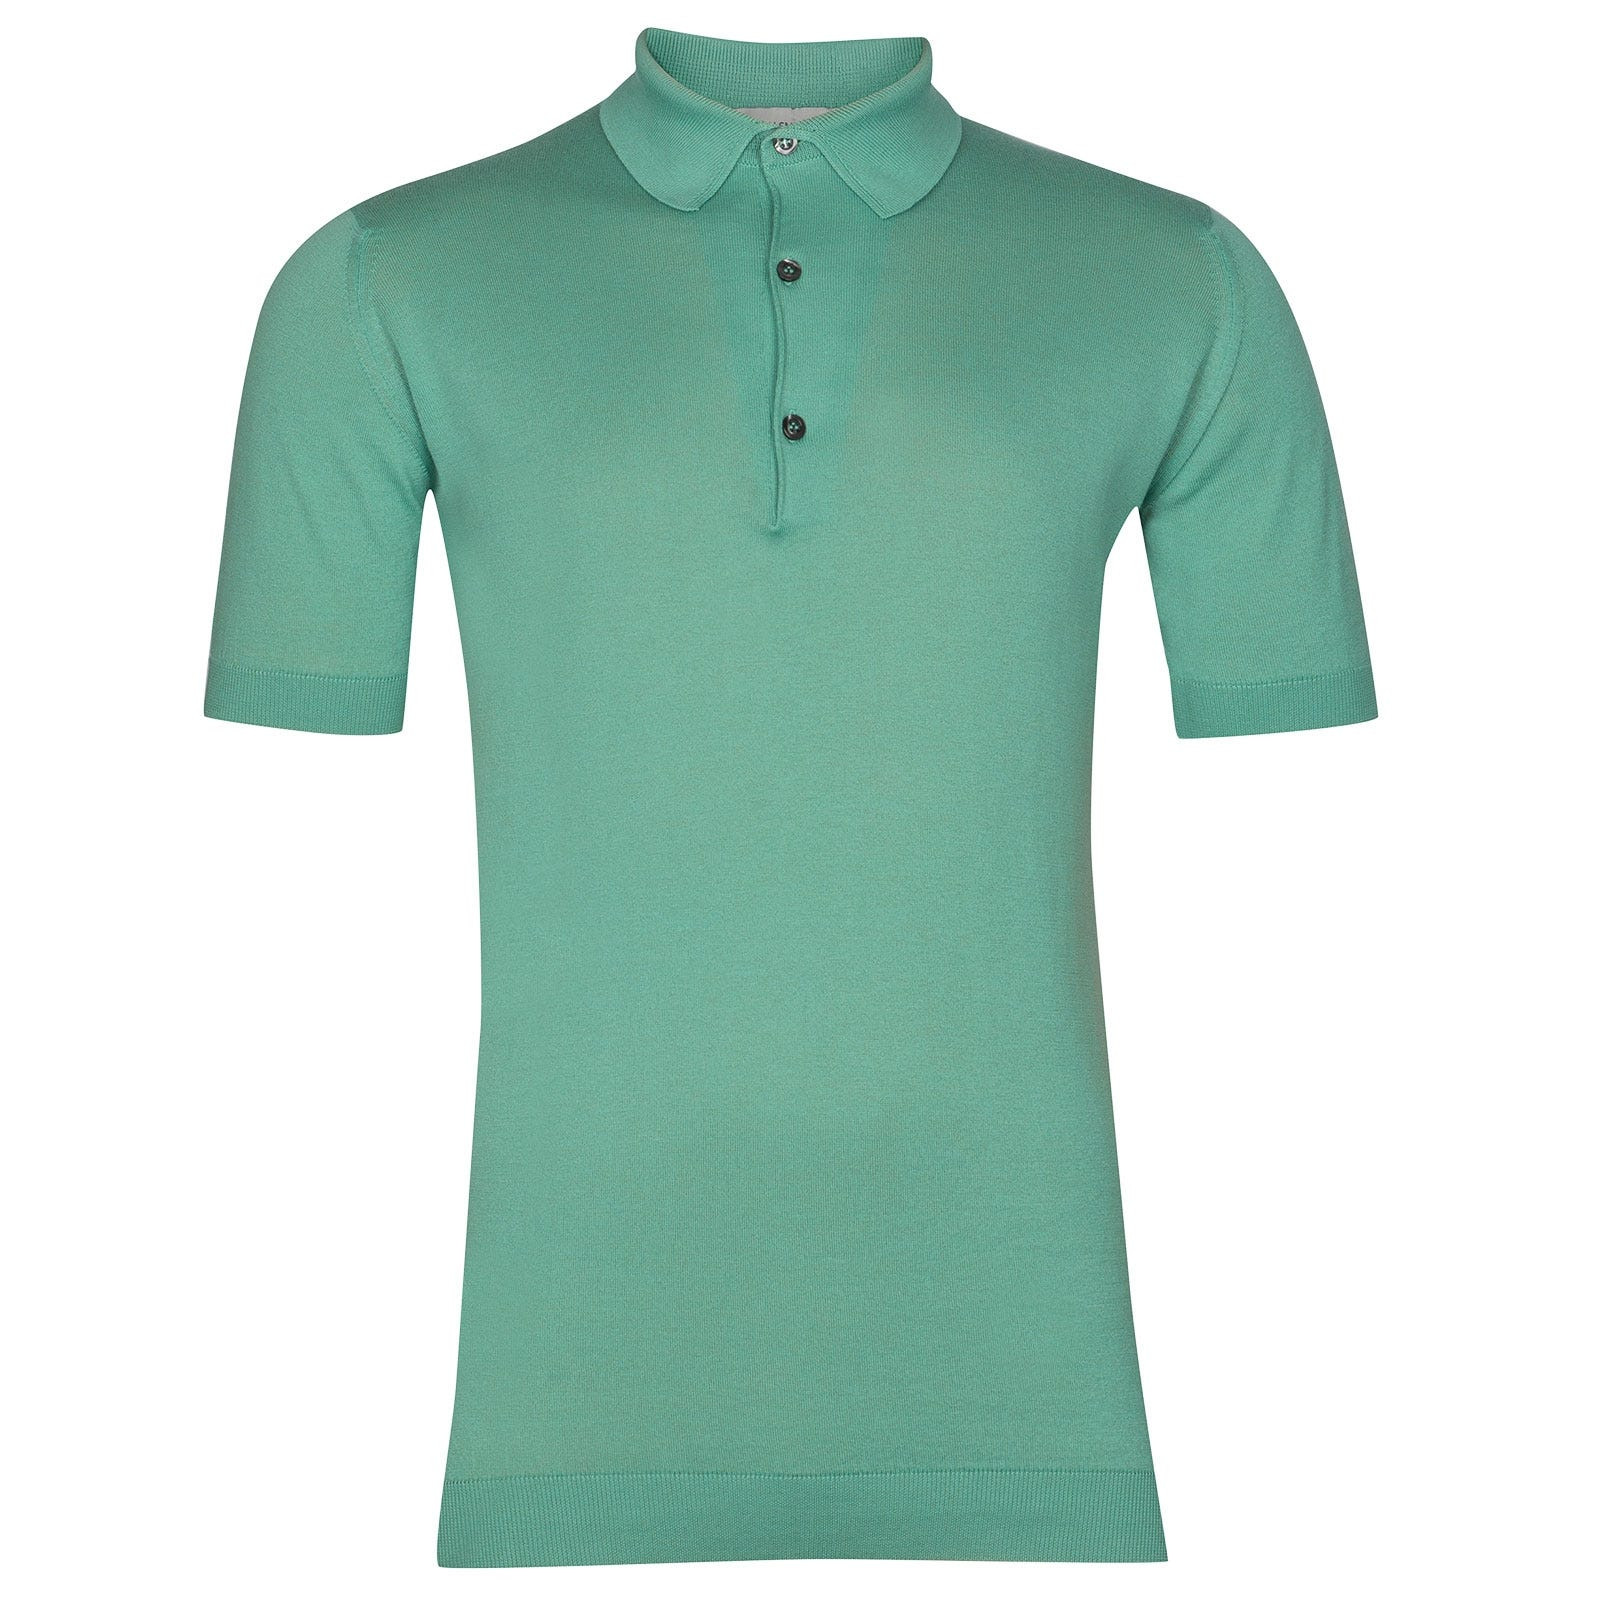 John Smedley Adrian Sea Island Cotton Shirt in Reflective Aqua-M